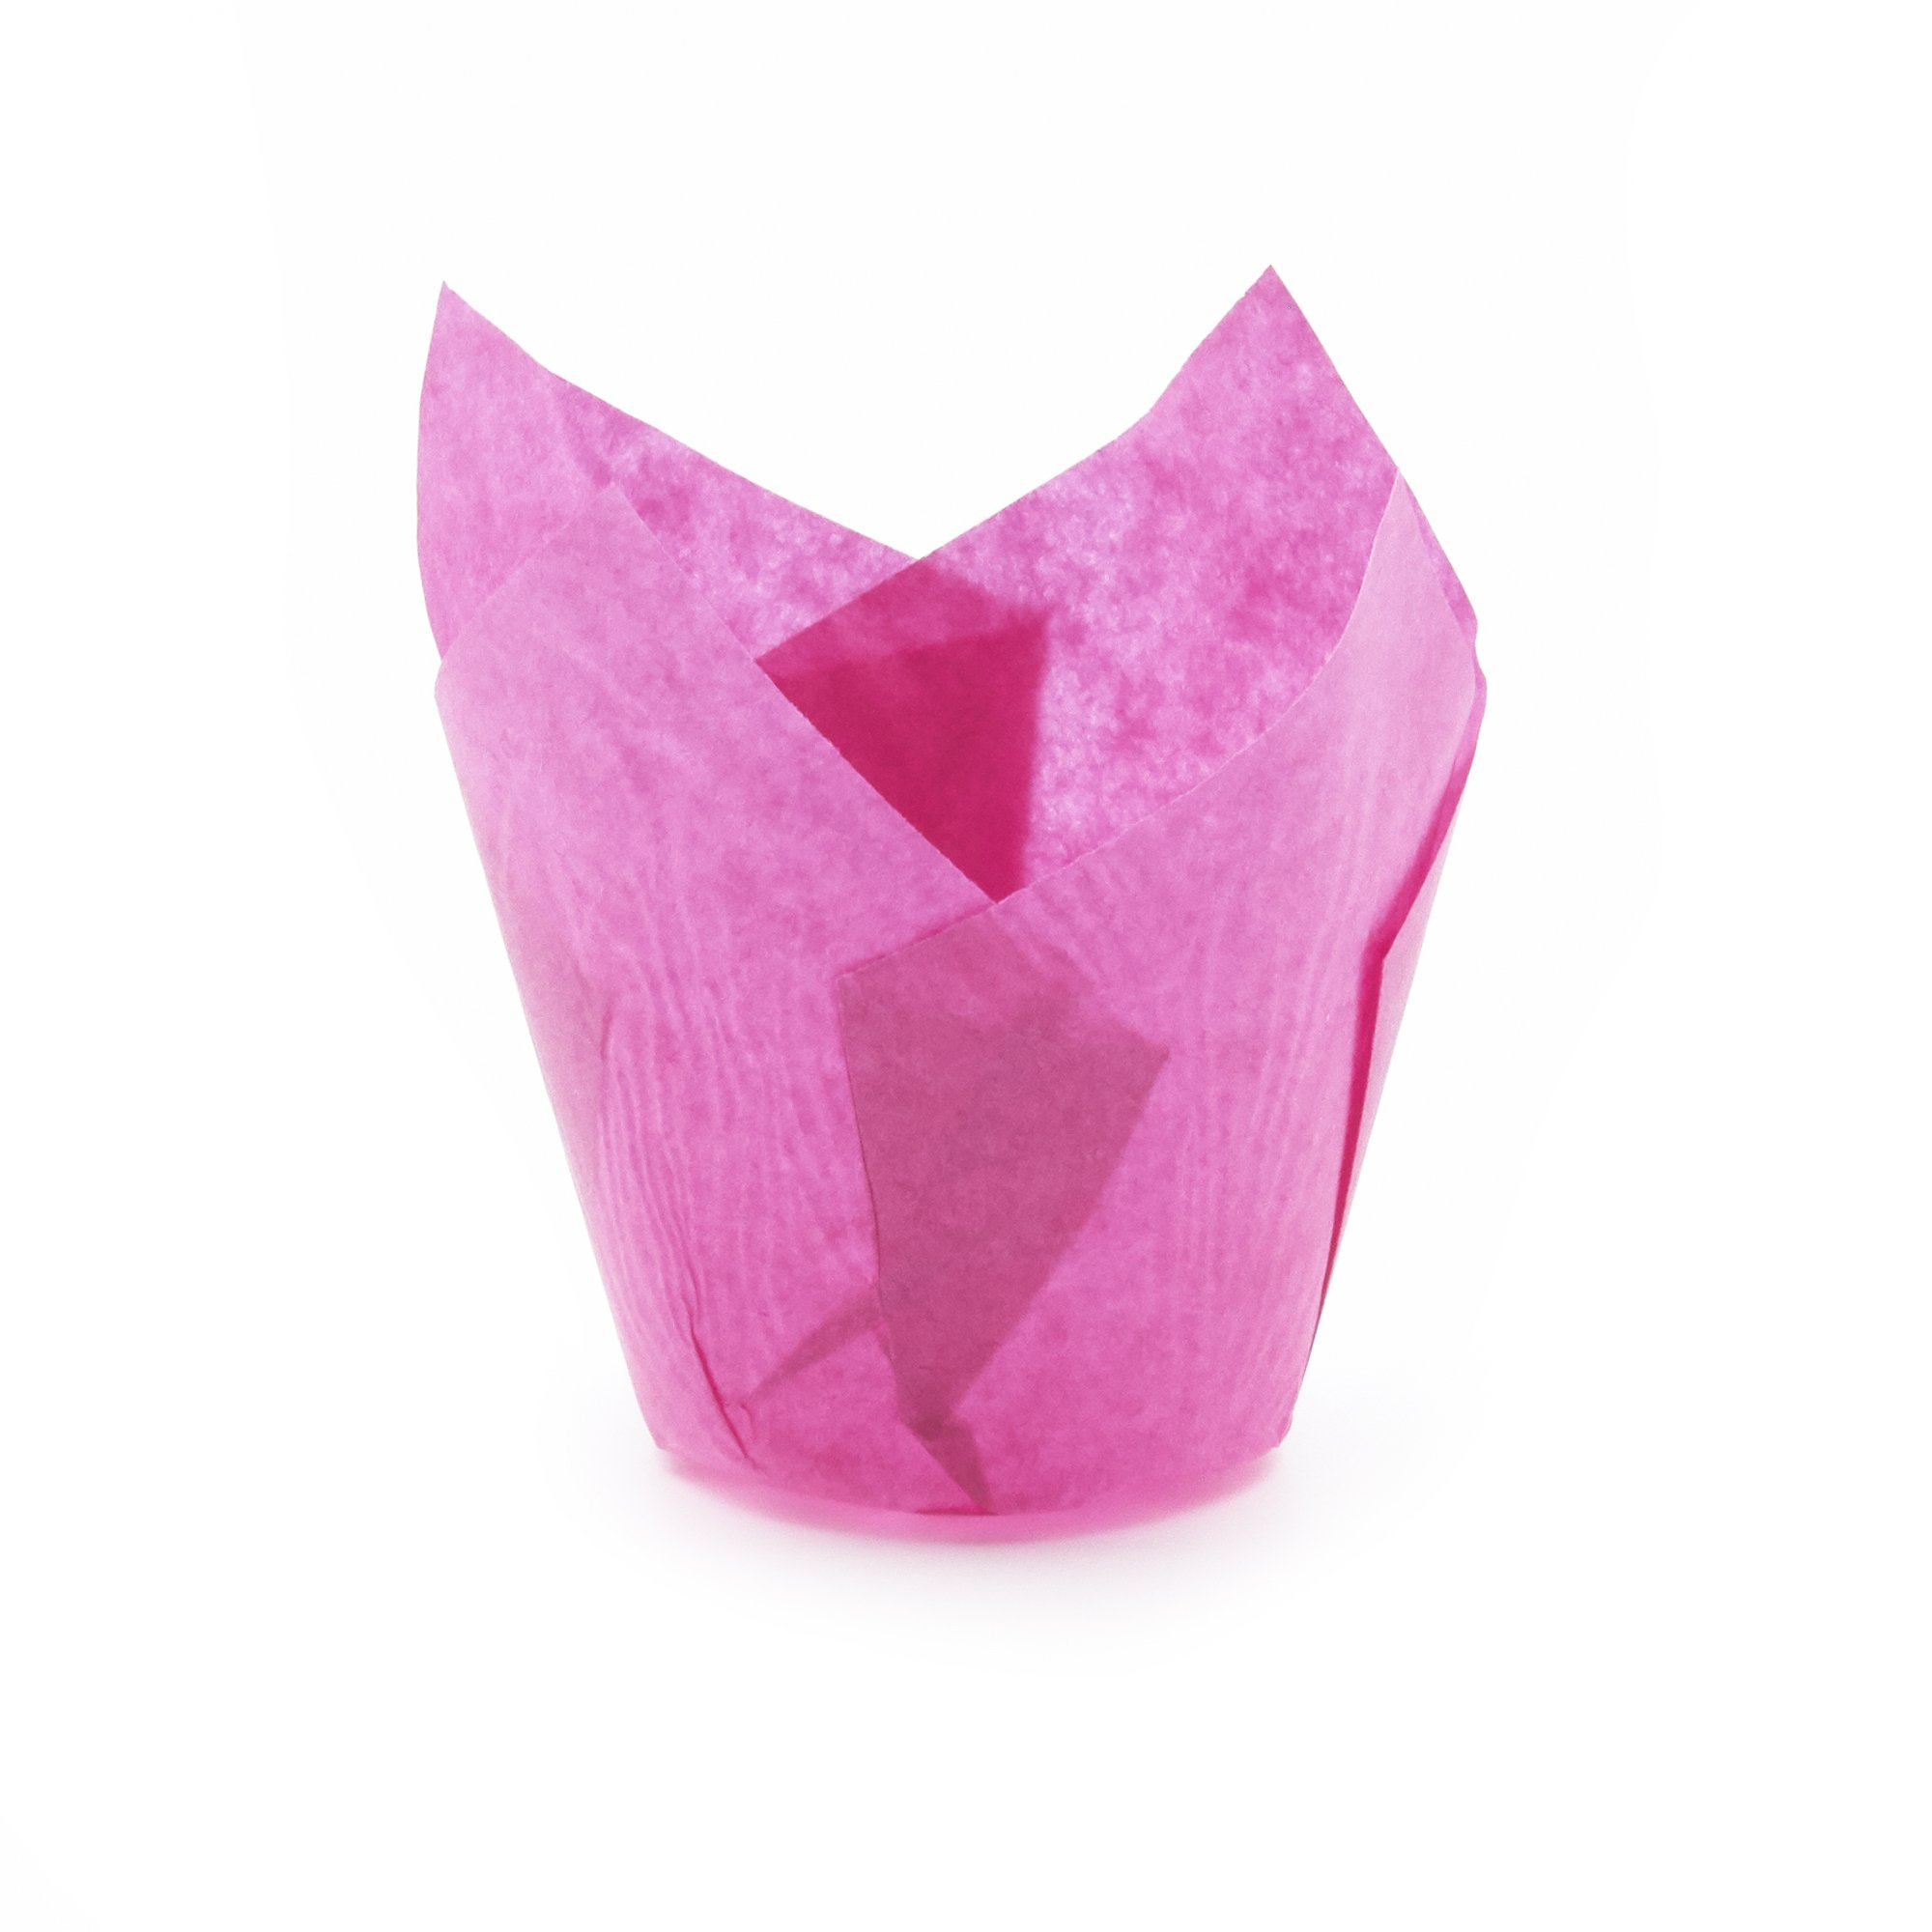 Hot Pink Tulip Baking Cups, Extra Large, Pack of 400 by Ecobake